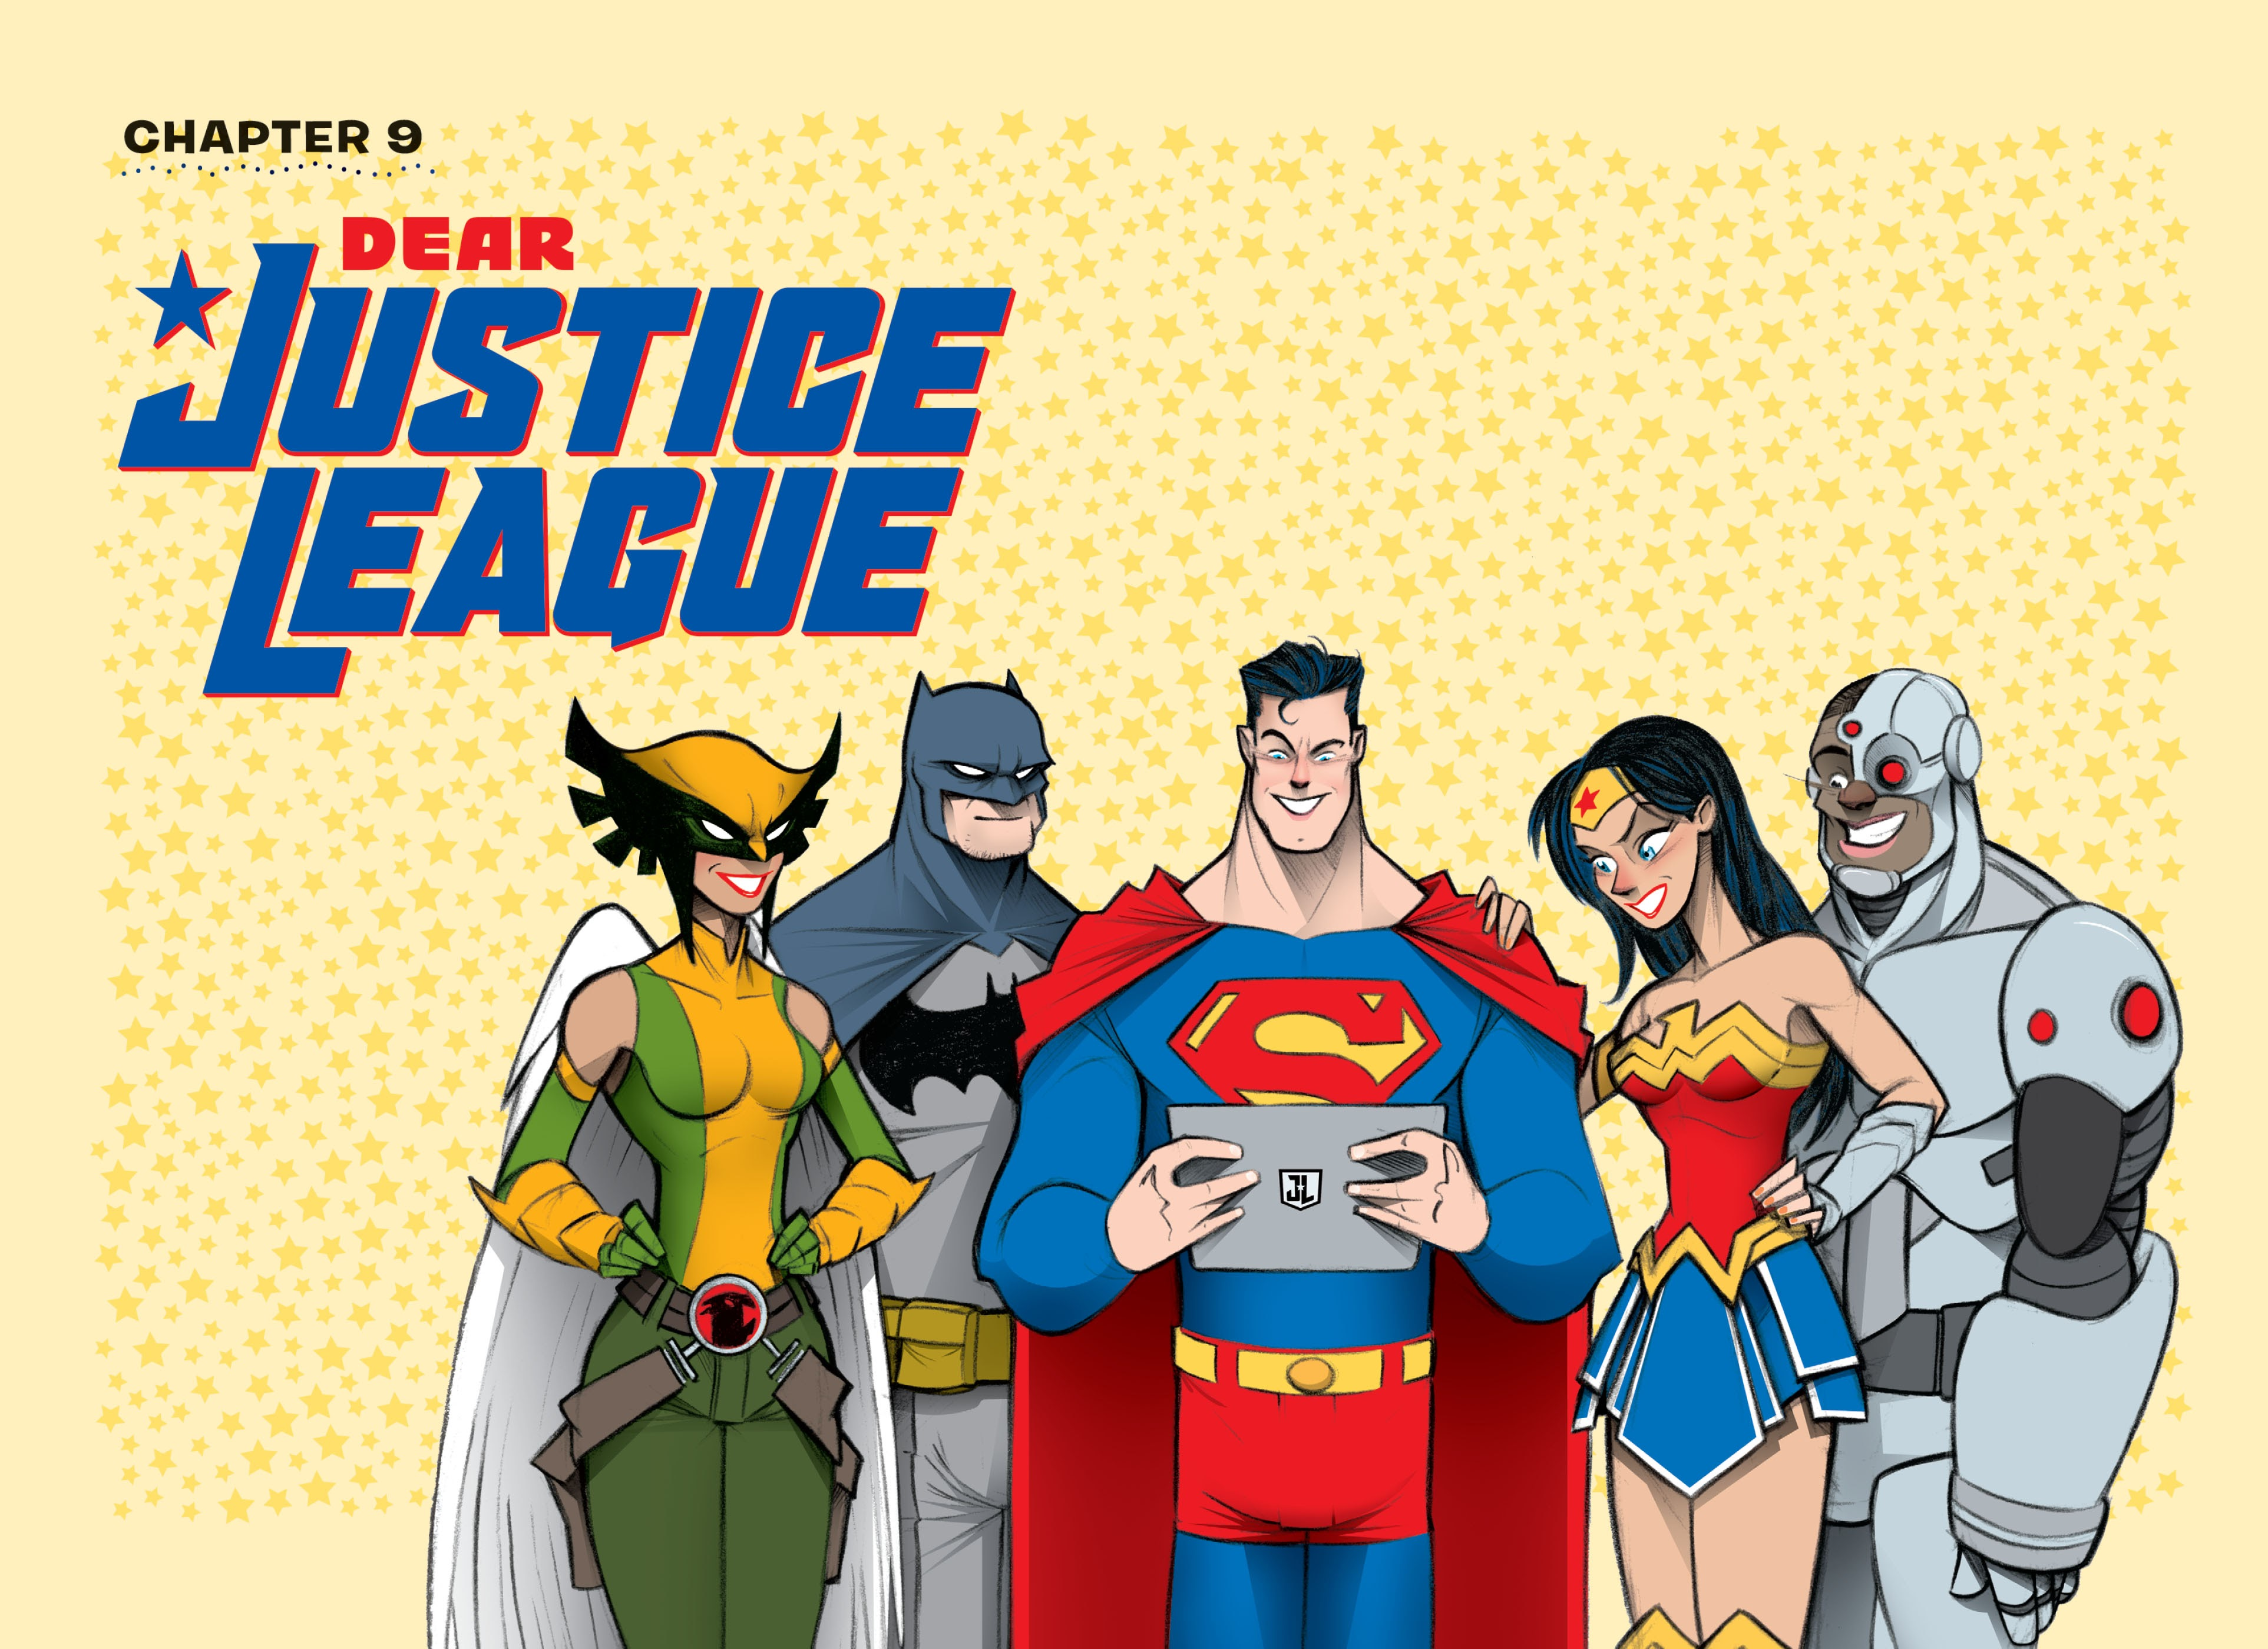 Dear Justice League #TPB_(Part_2) #1 - English 25